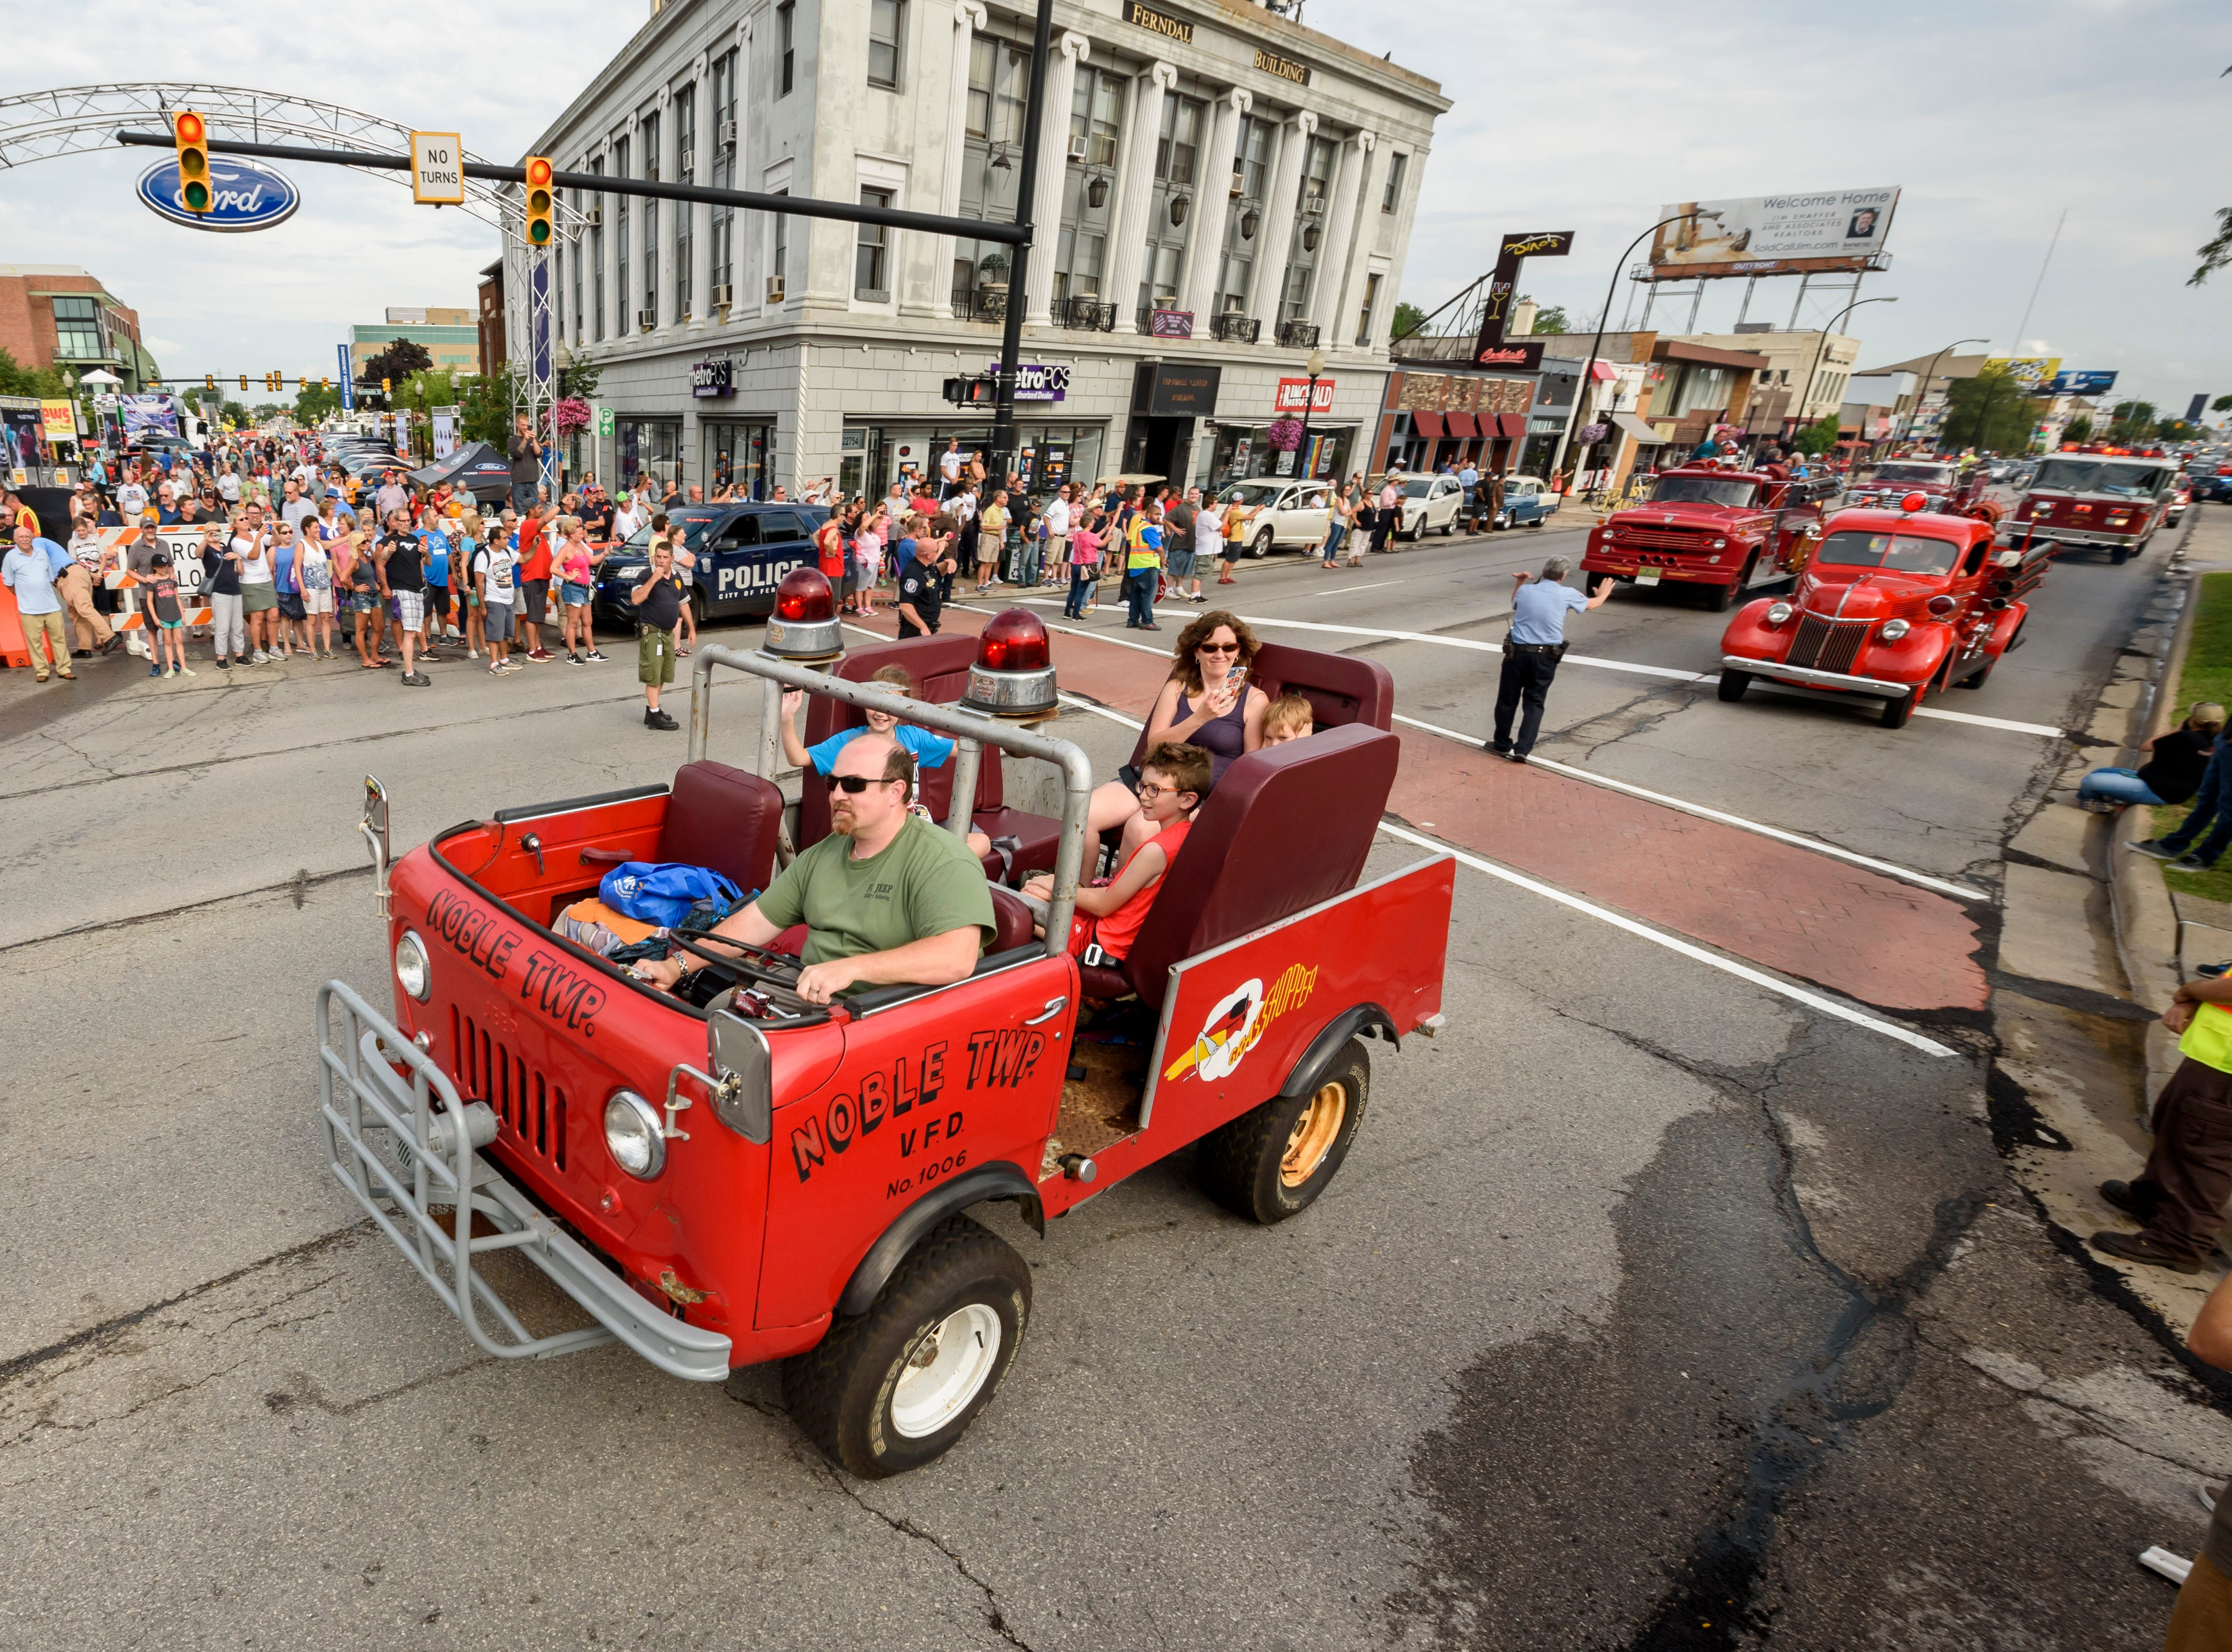 Matt Sasina, of Farmigton Hills, drives his 1960 Jeep brush truck, which was used by the Noble Twp. fire department, in the 18th Annual Ferndale Emergency Vehicle Show, August 17, 2018. Dozens of emergency vehicles from across the decades participated in the parade that ran for two miles of Woodward Ave.